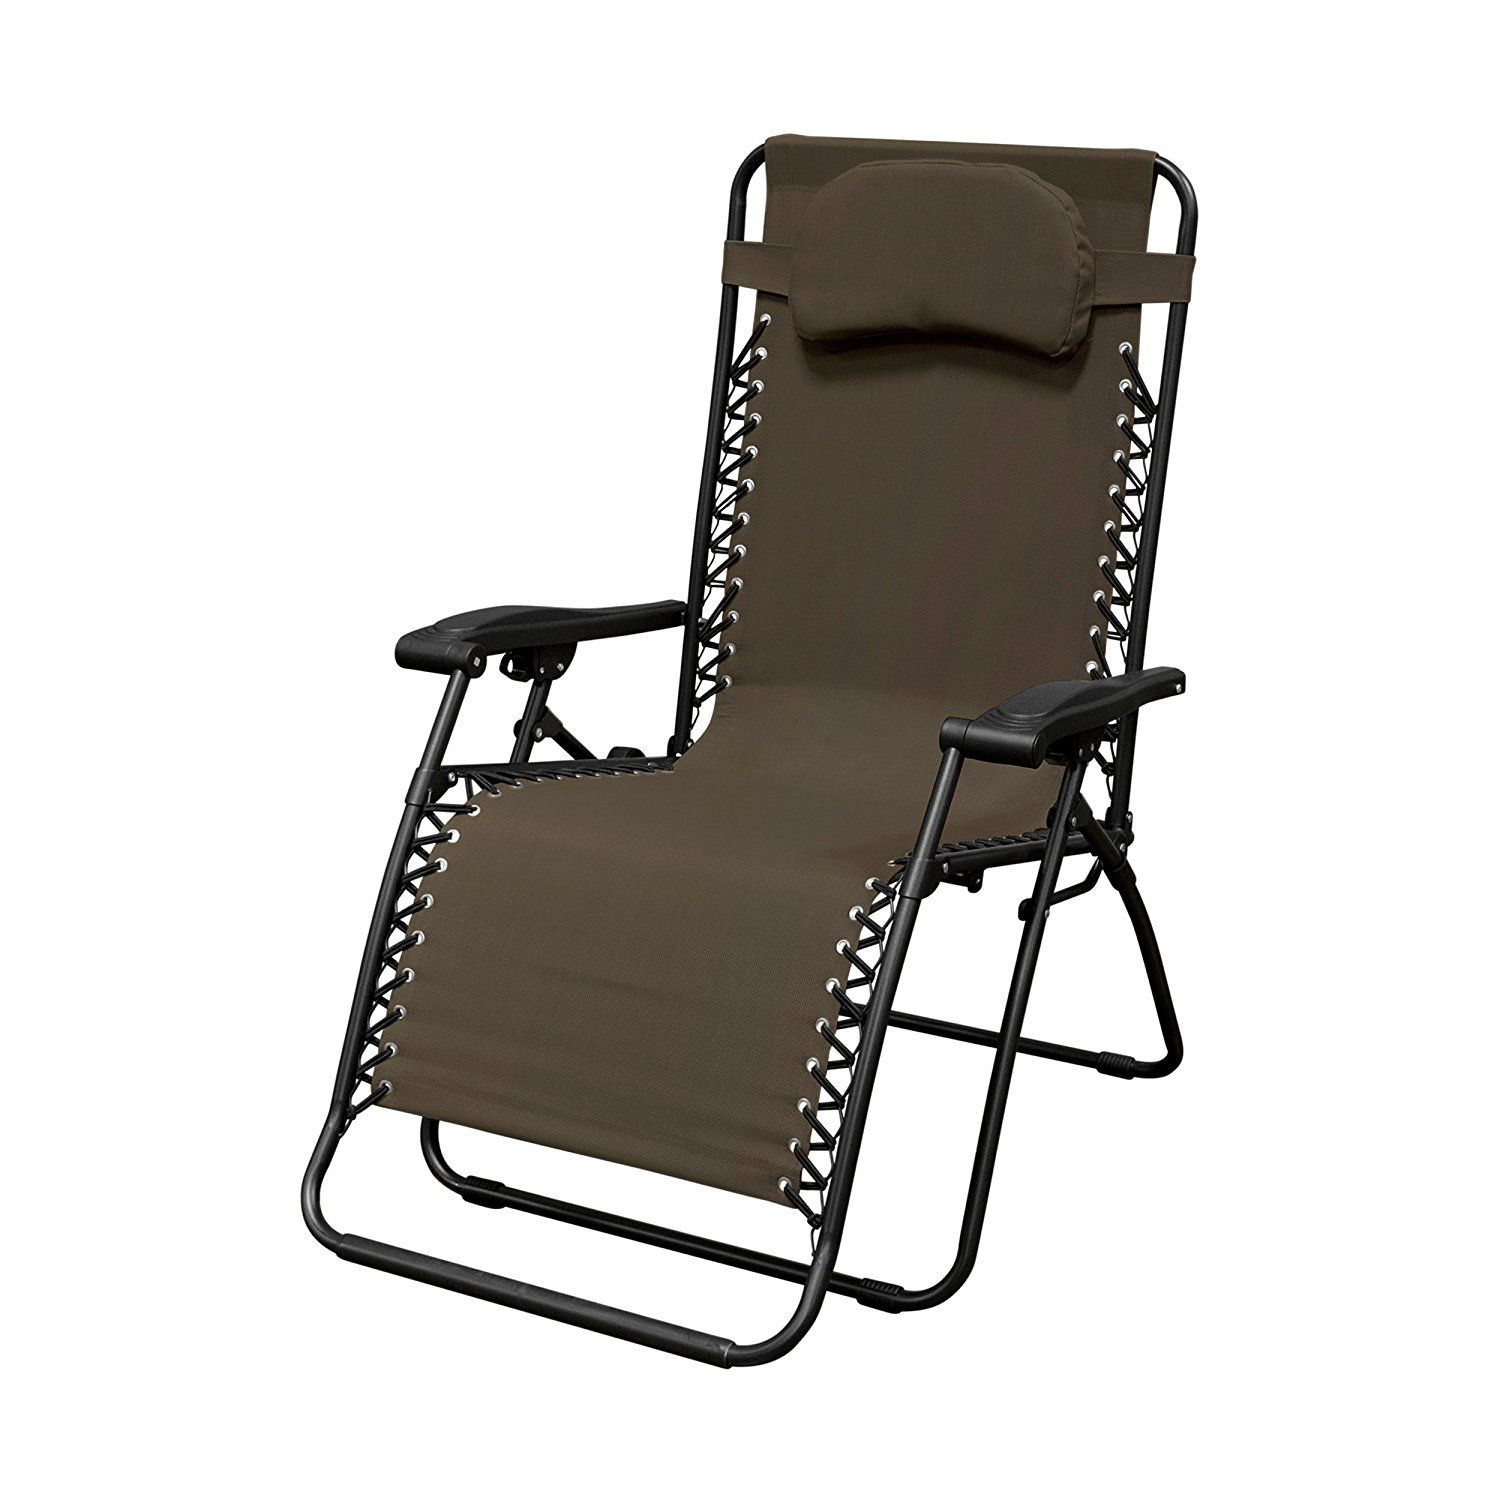 What Are The Best Big And Tall Outdoor Chairs? This Is A Common Question  Among Plus Size People Who Want To Have A Good Time In The Outdoors Without  The ...